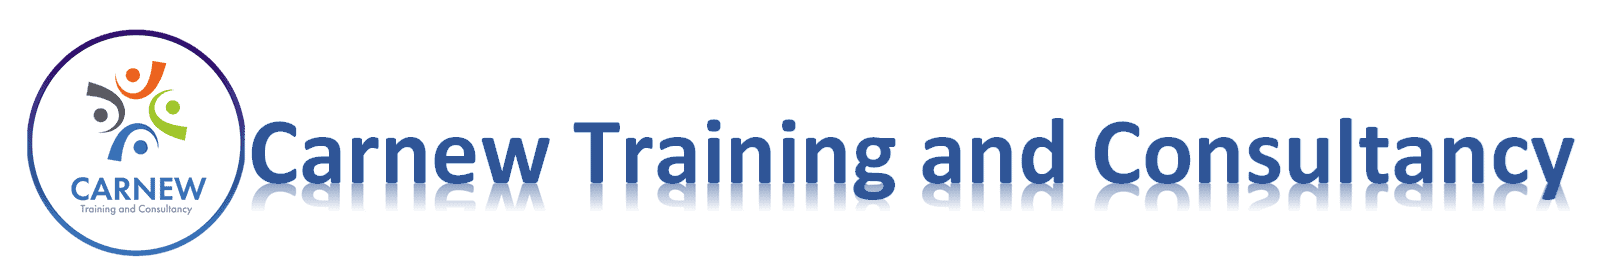 Carnew Training and Consultancy Logo